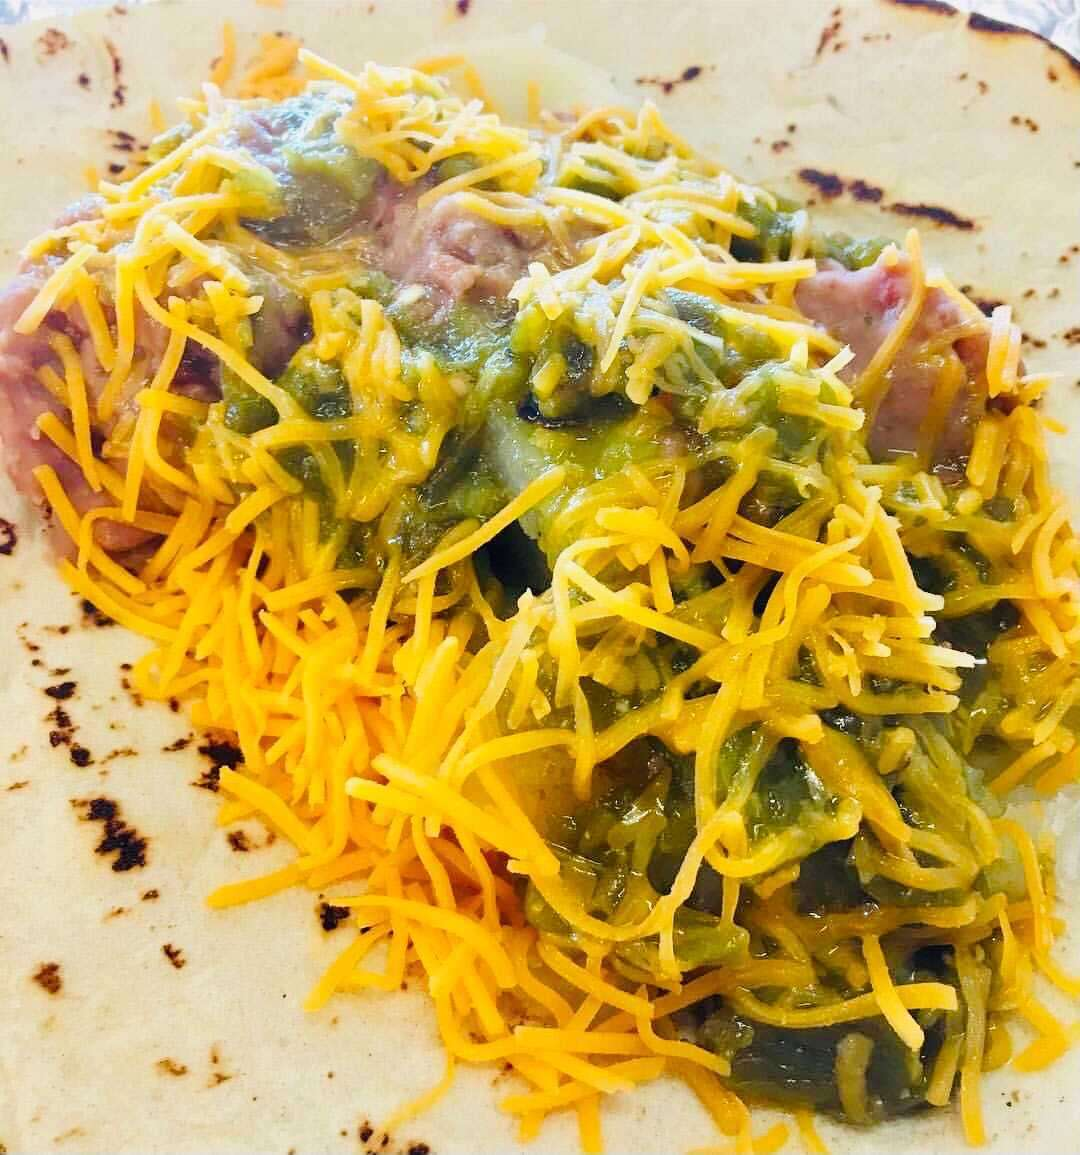 9. Potatoes, Beans, Cheese and Green Chile